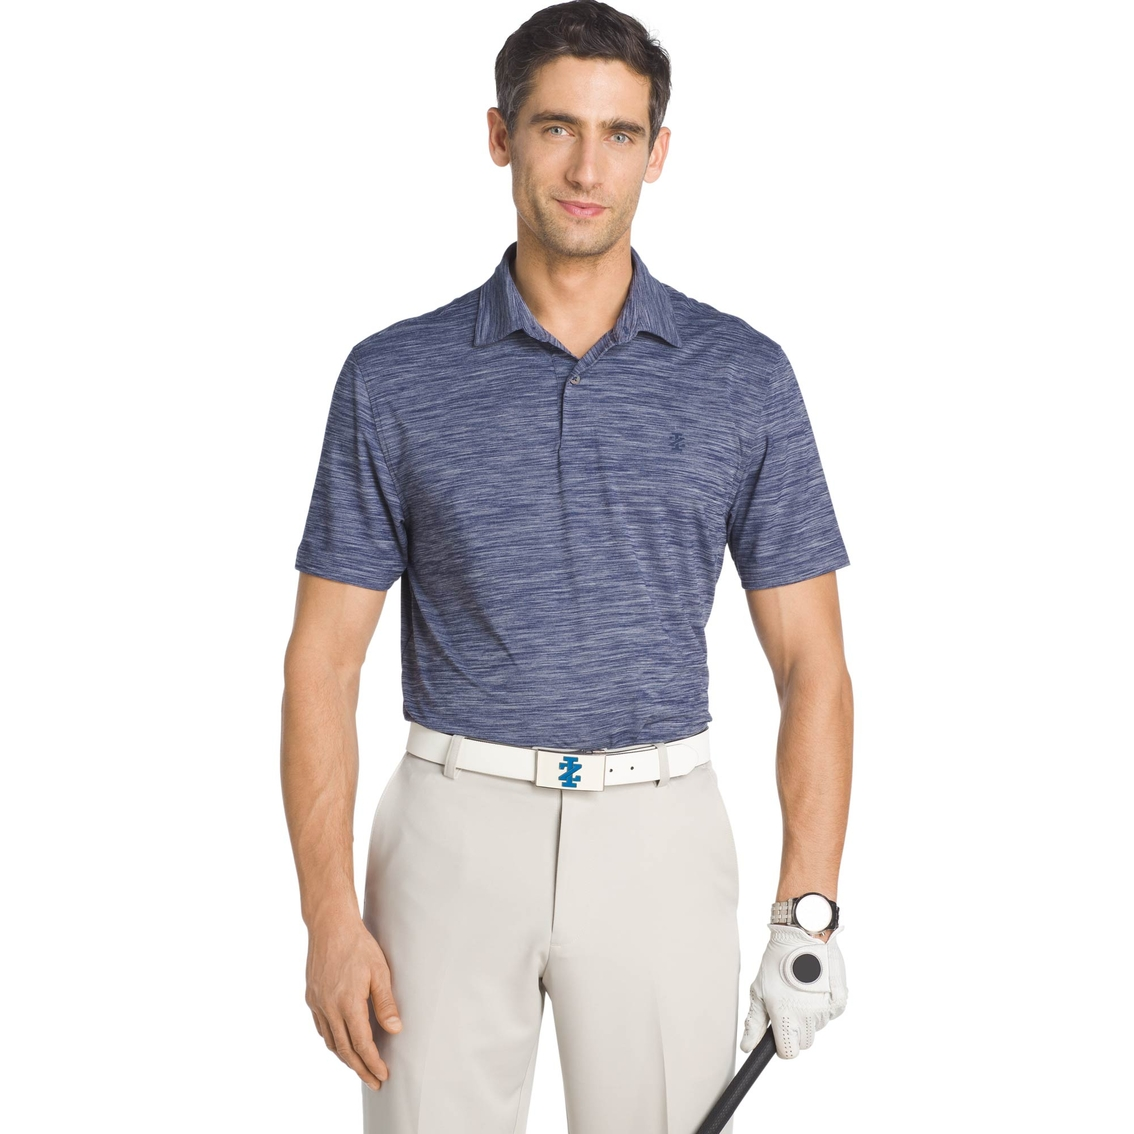 new appearance popular stores authentic quality Izod Golf Title Holder Polo Shirt   Polos   Apparel   Shop ...